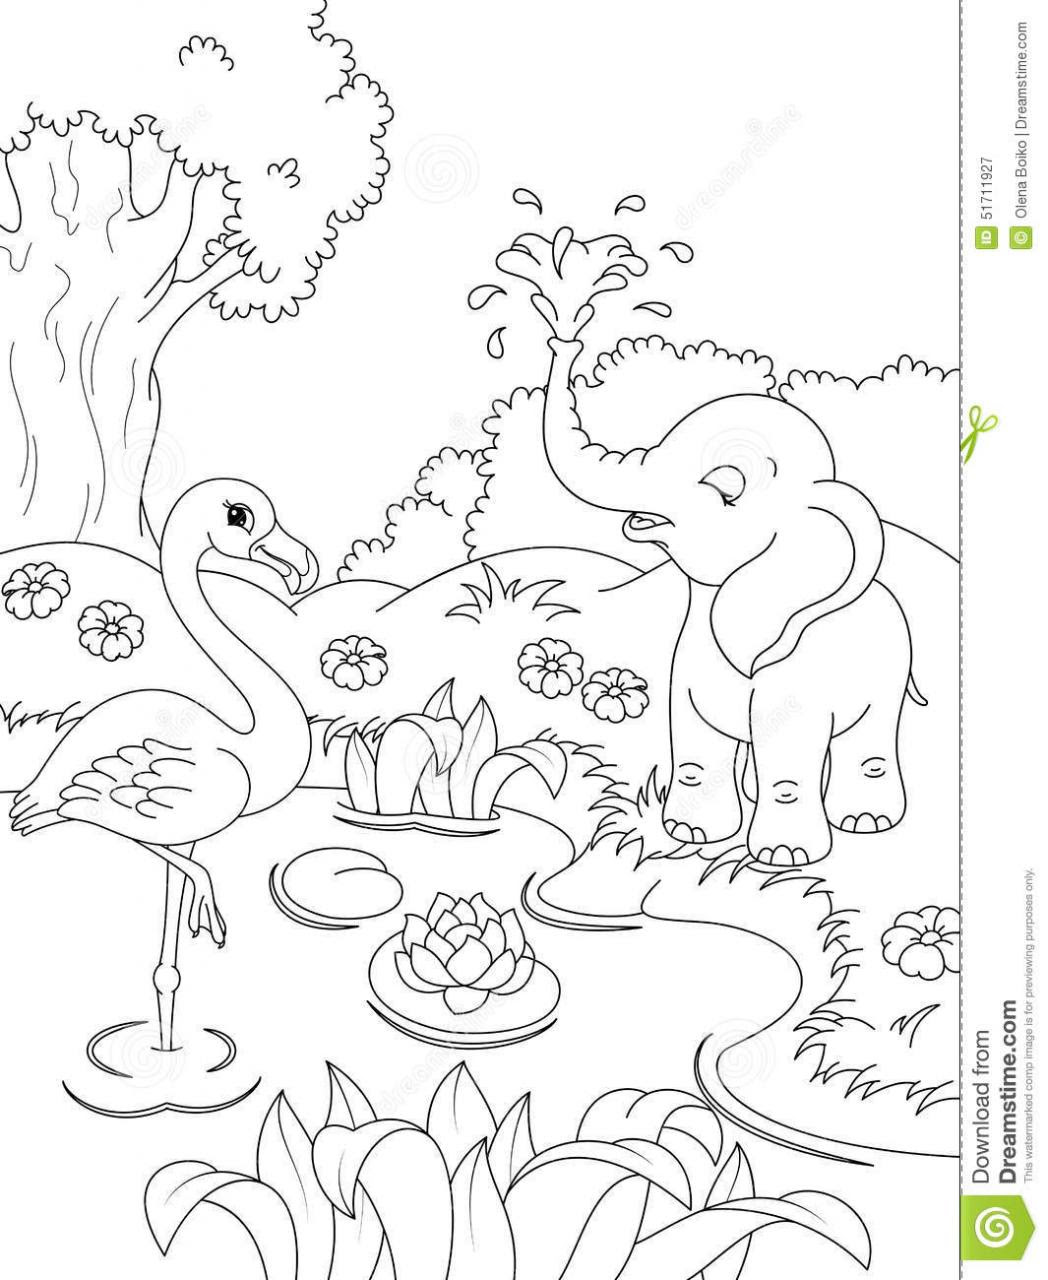 Coloring Pages Nature Scenes at GetDrawings | Free download